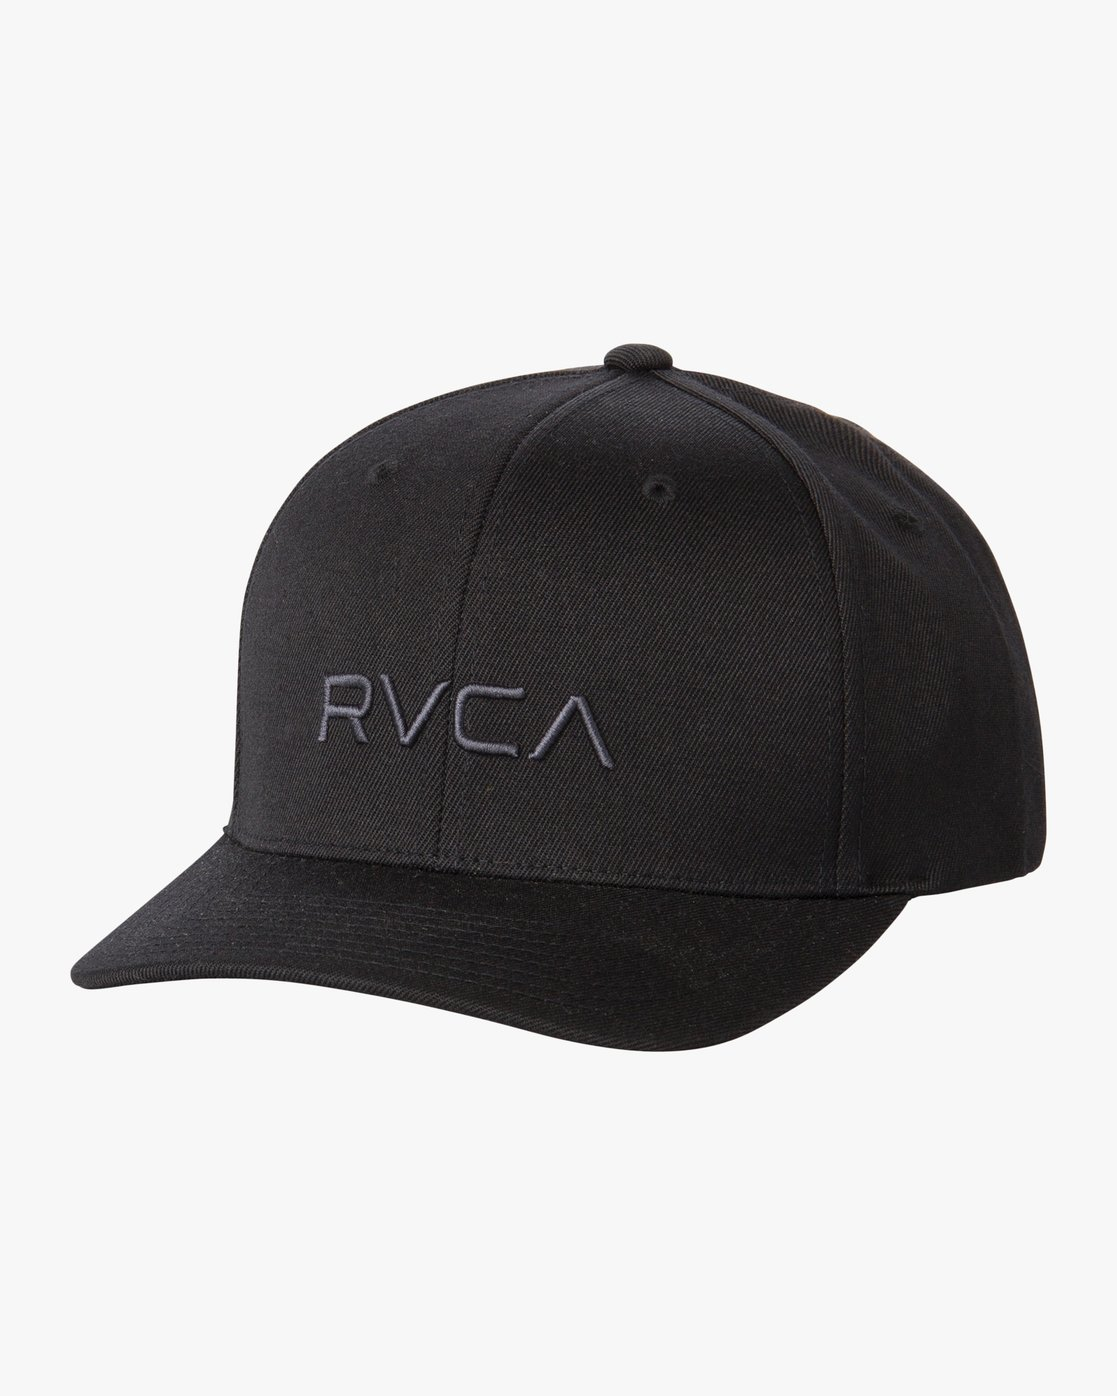 0 RVCA Flex Fit Baseball Hat Black MHAHWRFF RVCA